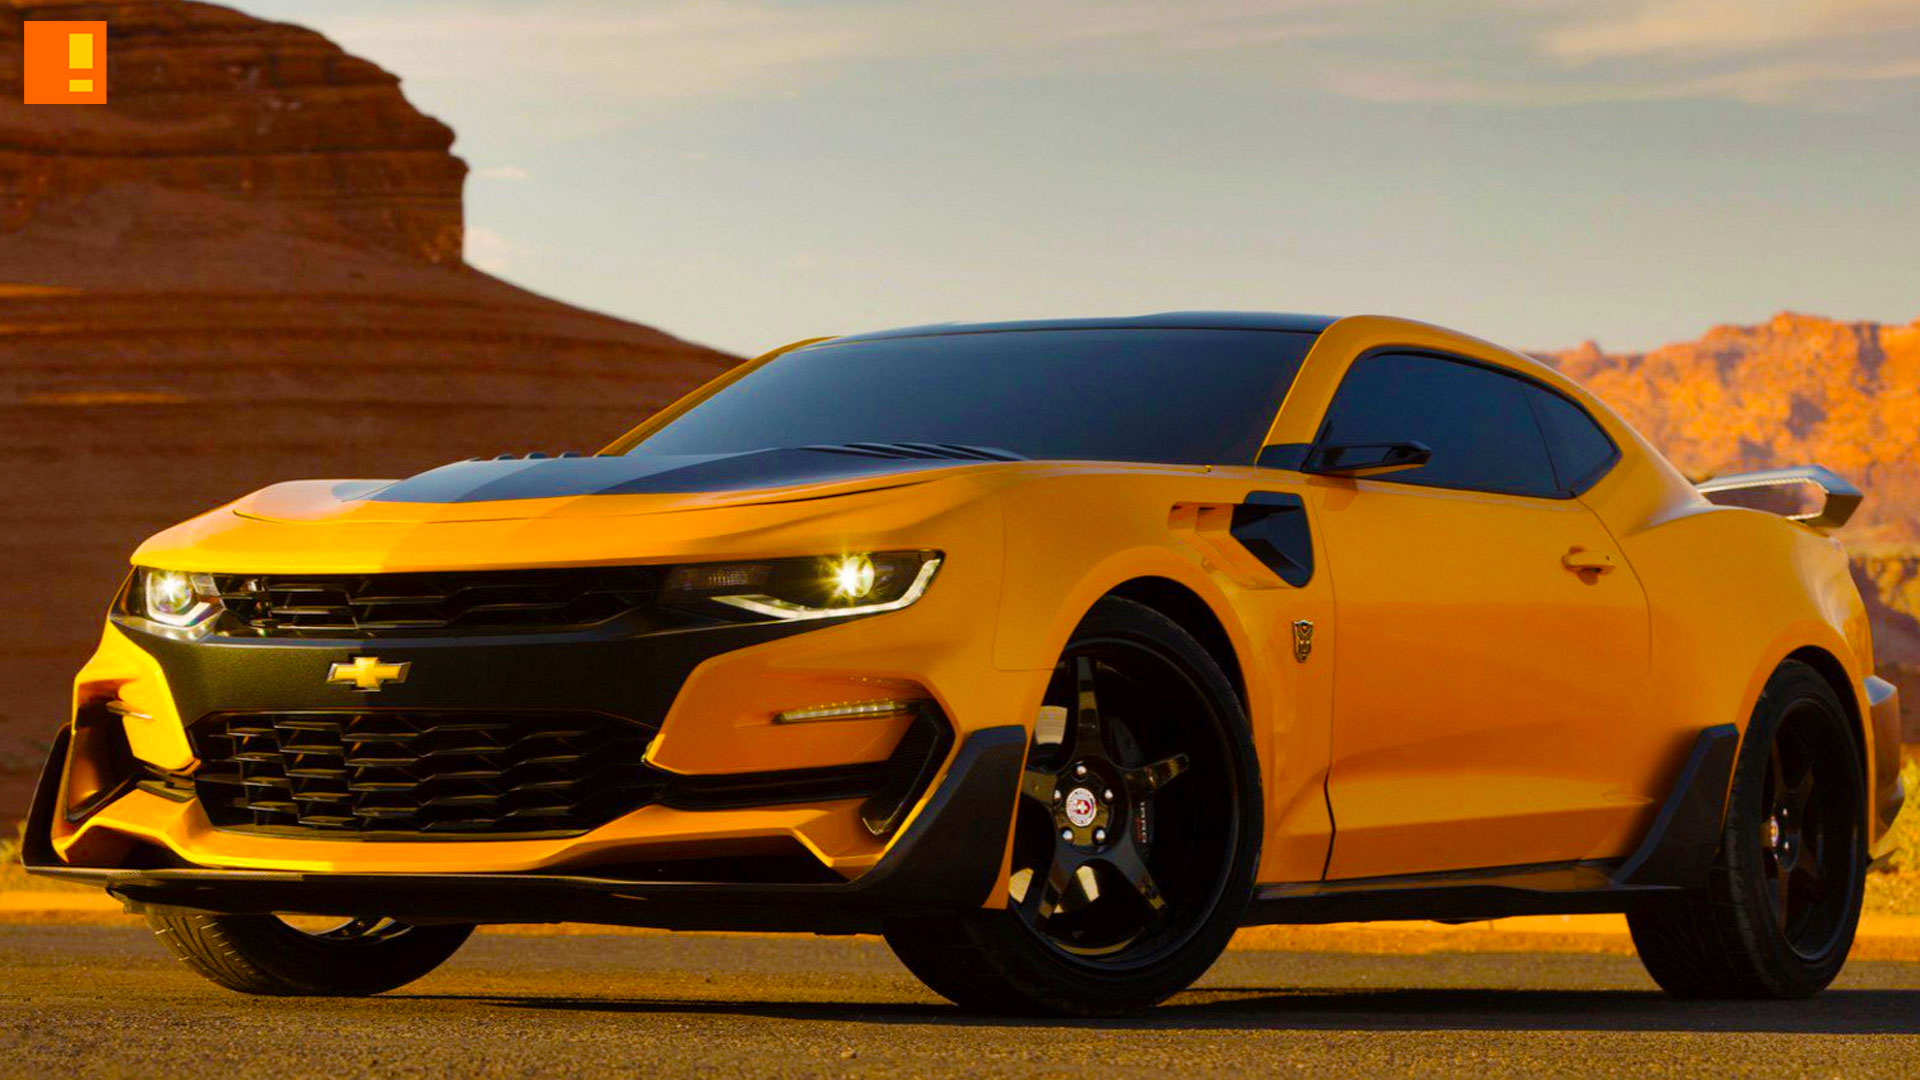 bumblebee, camaro, 2016, transformers, the last knight, michael bay, paramount pictures,